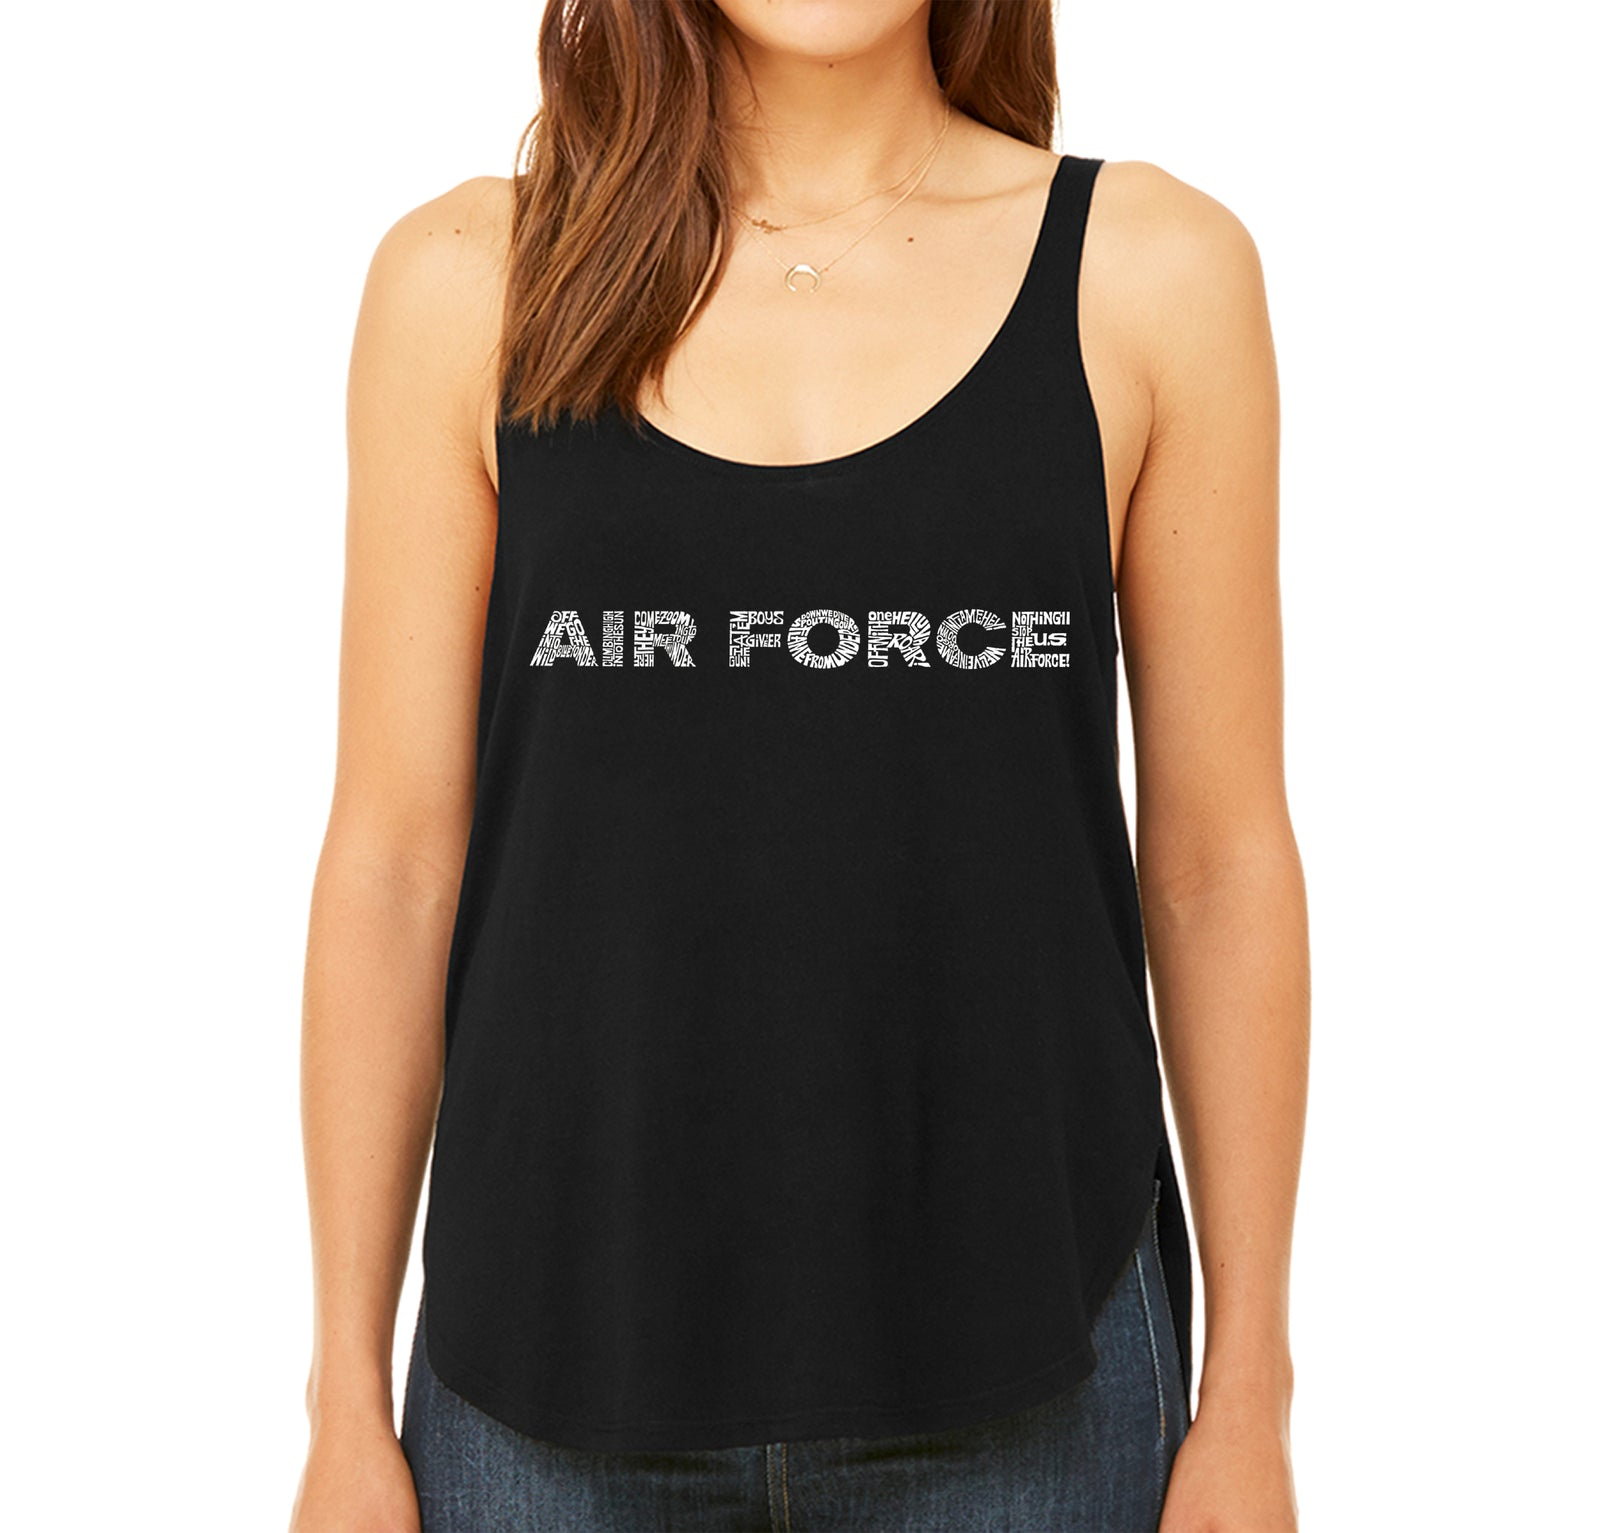 Women's Premium Word Art Flowy Tank Top - Lyrics To The Air Force Song